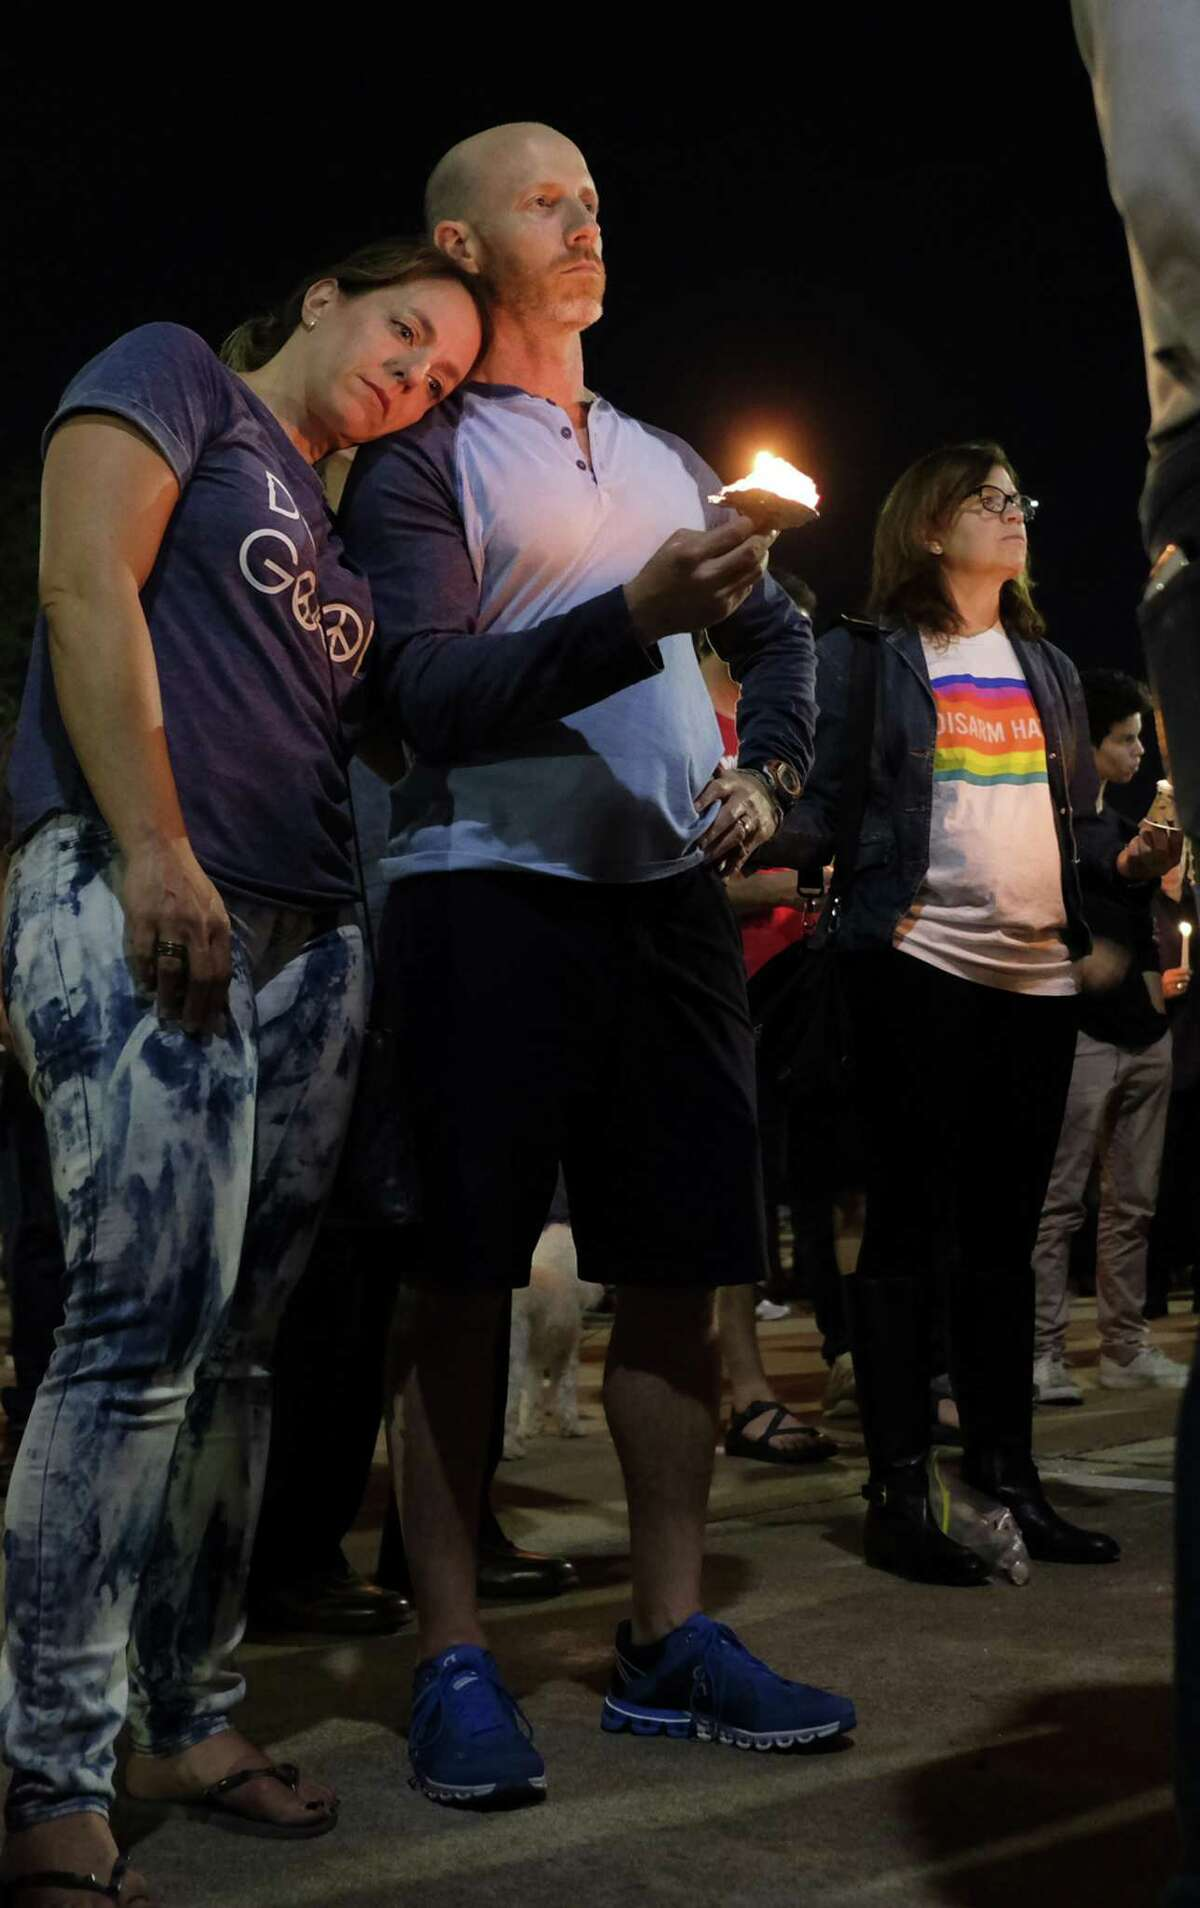 Members of the Houston Jewish community hold a vigil on Sunday, October 28, 2018, at the Evelyn Rubenstein Jewish Community Center to honor the victims of the Pittsburgh synagogue attack.